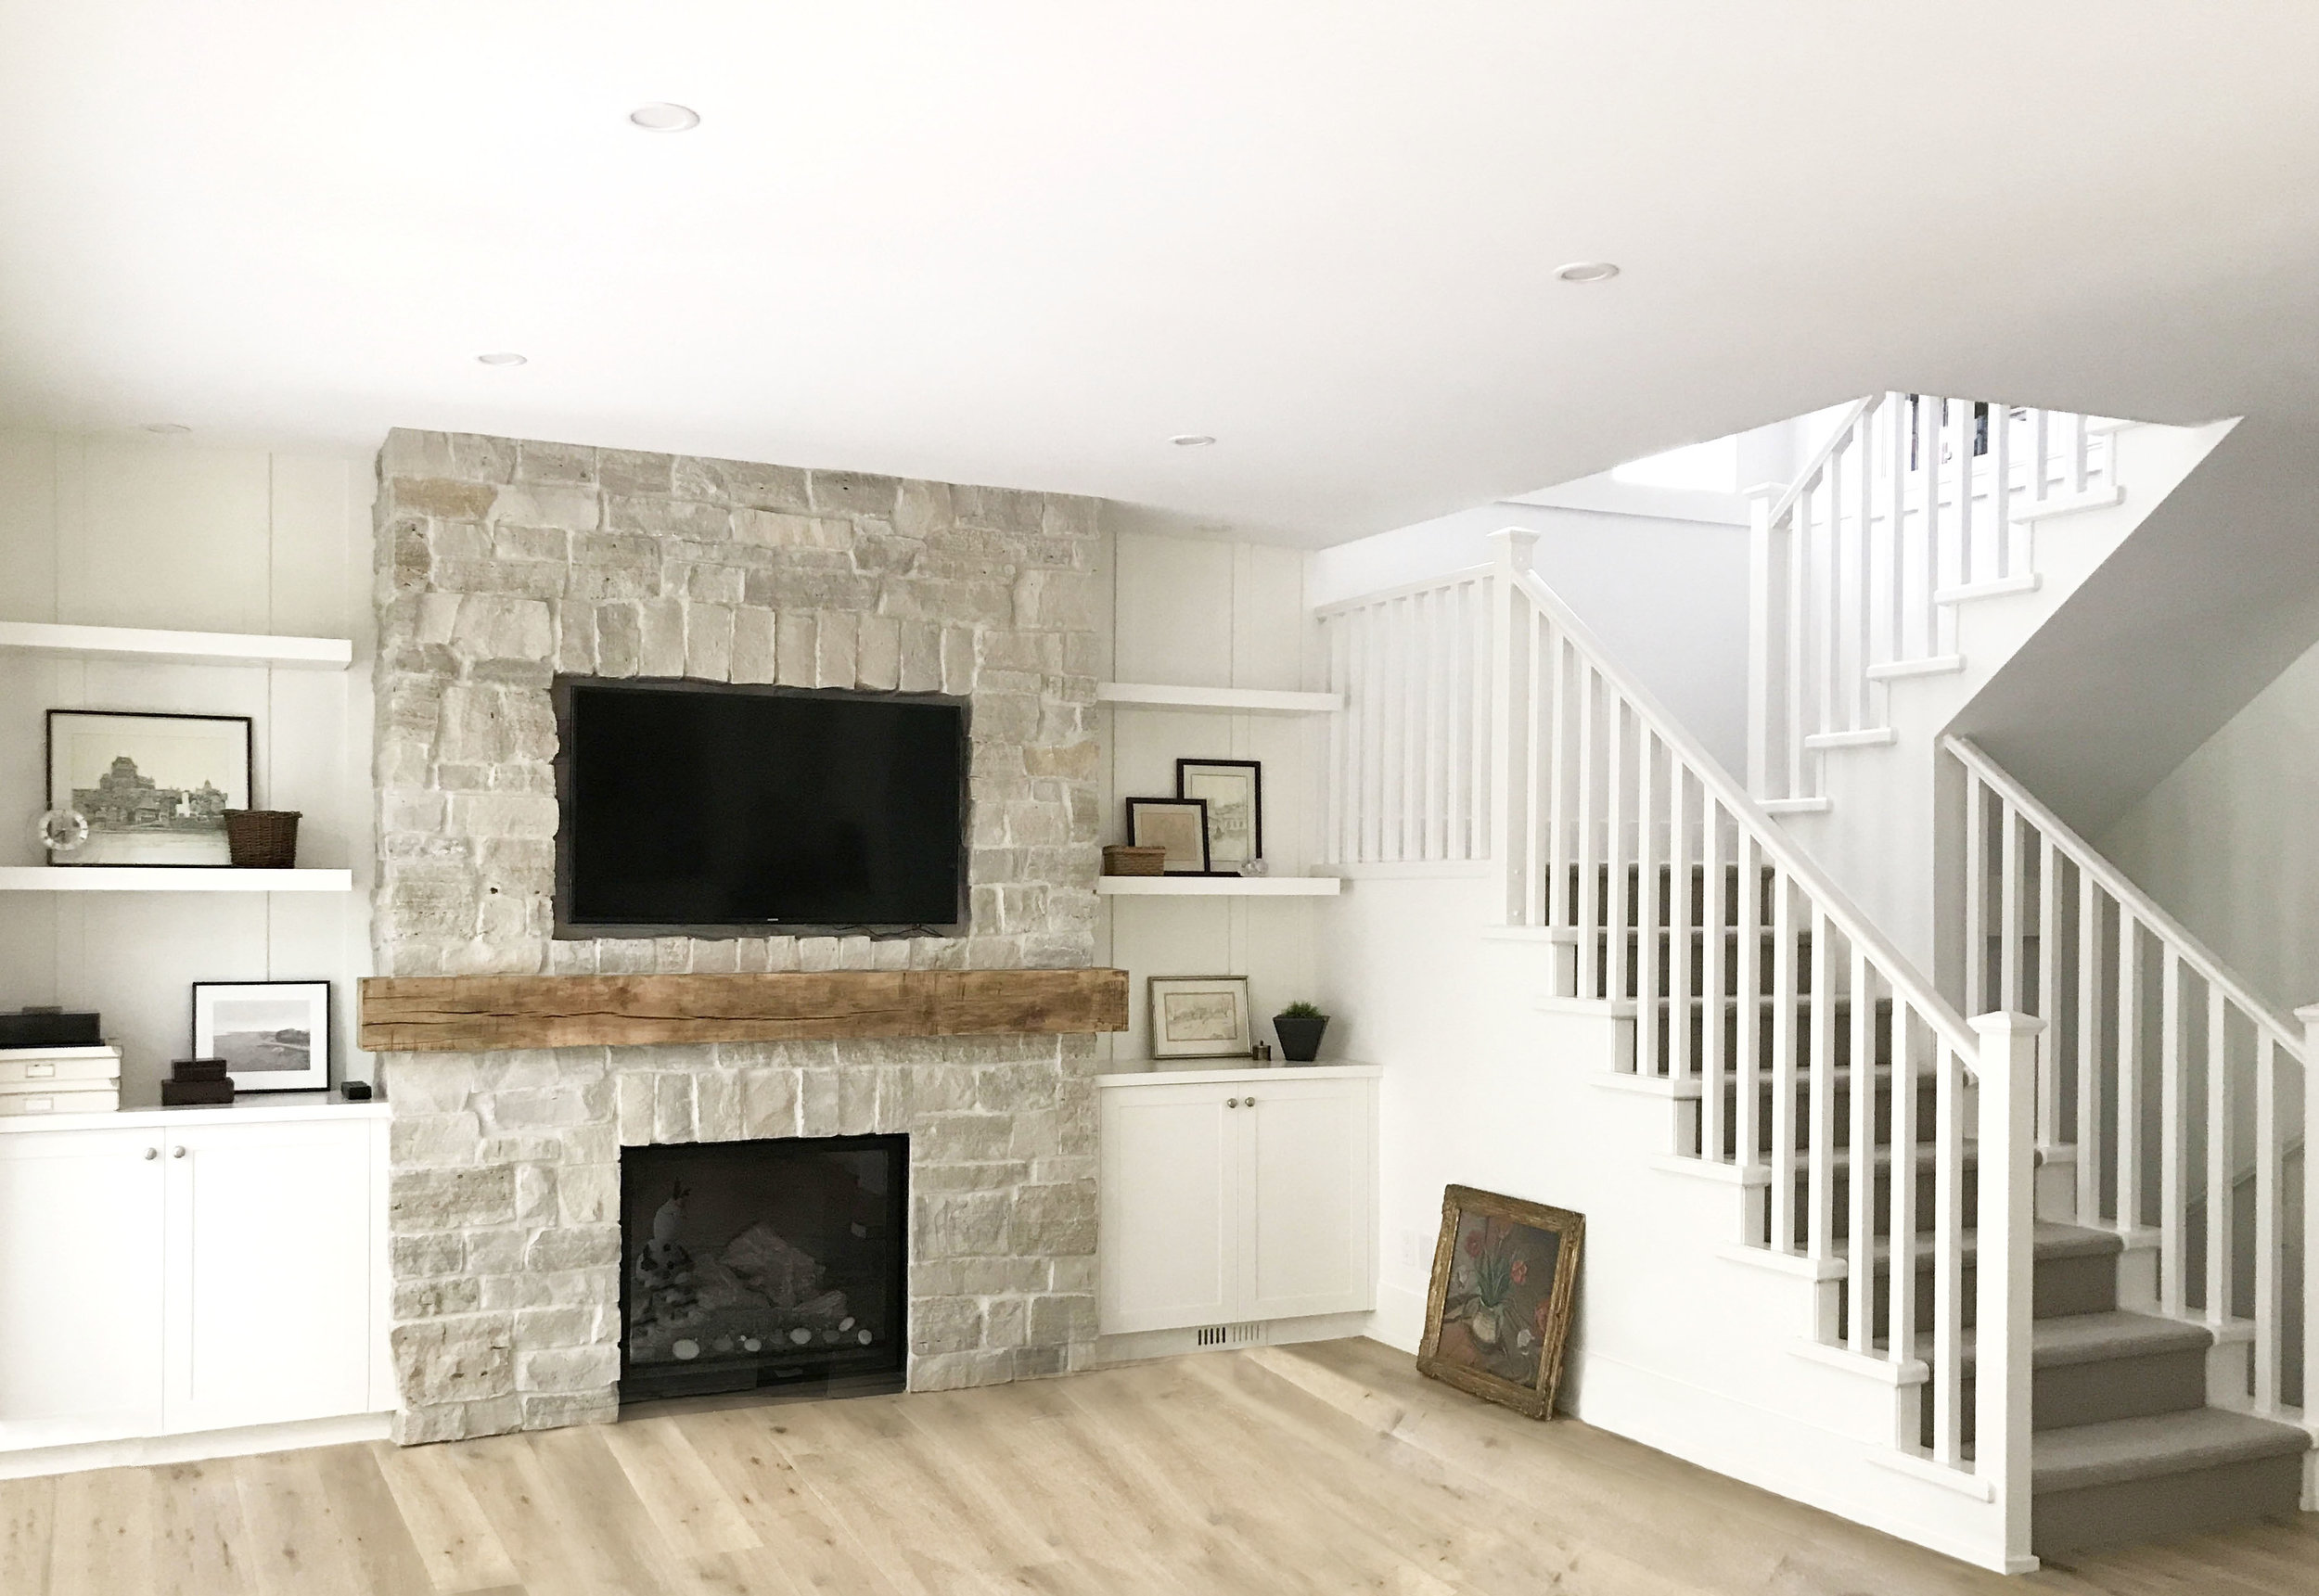 HOLLY II  A 3500 square foot interior and exterior custom renovation in Port Moody.